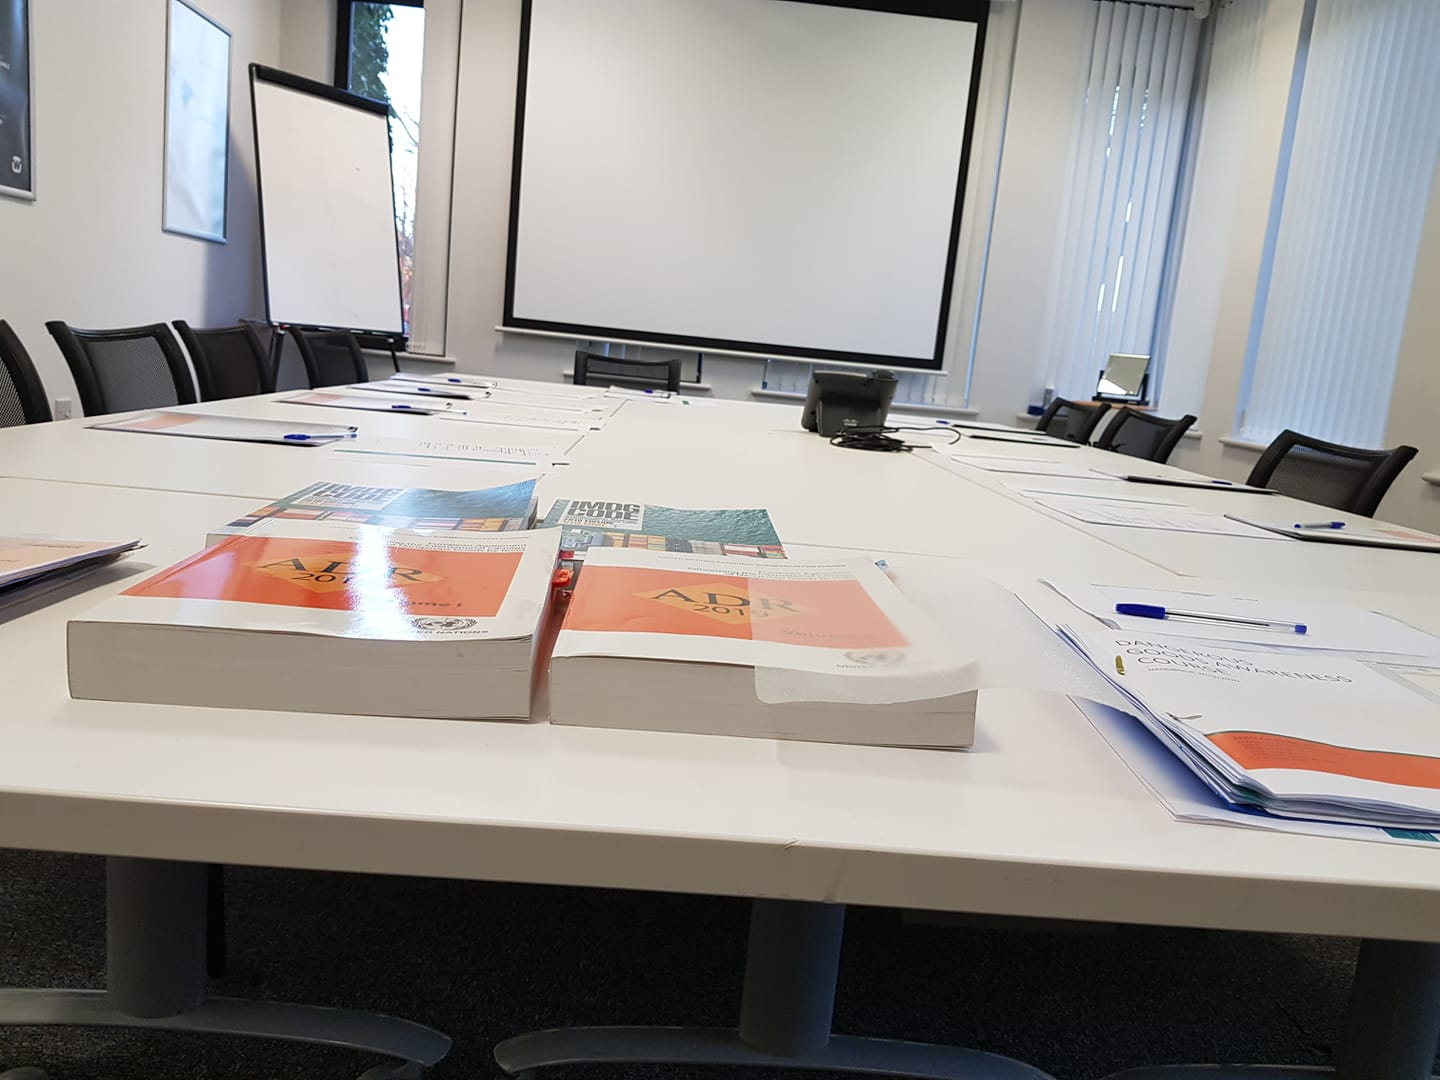 dangerous goods safety advisor training, books on table in a meeting room